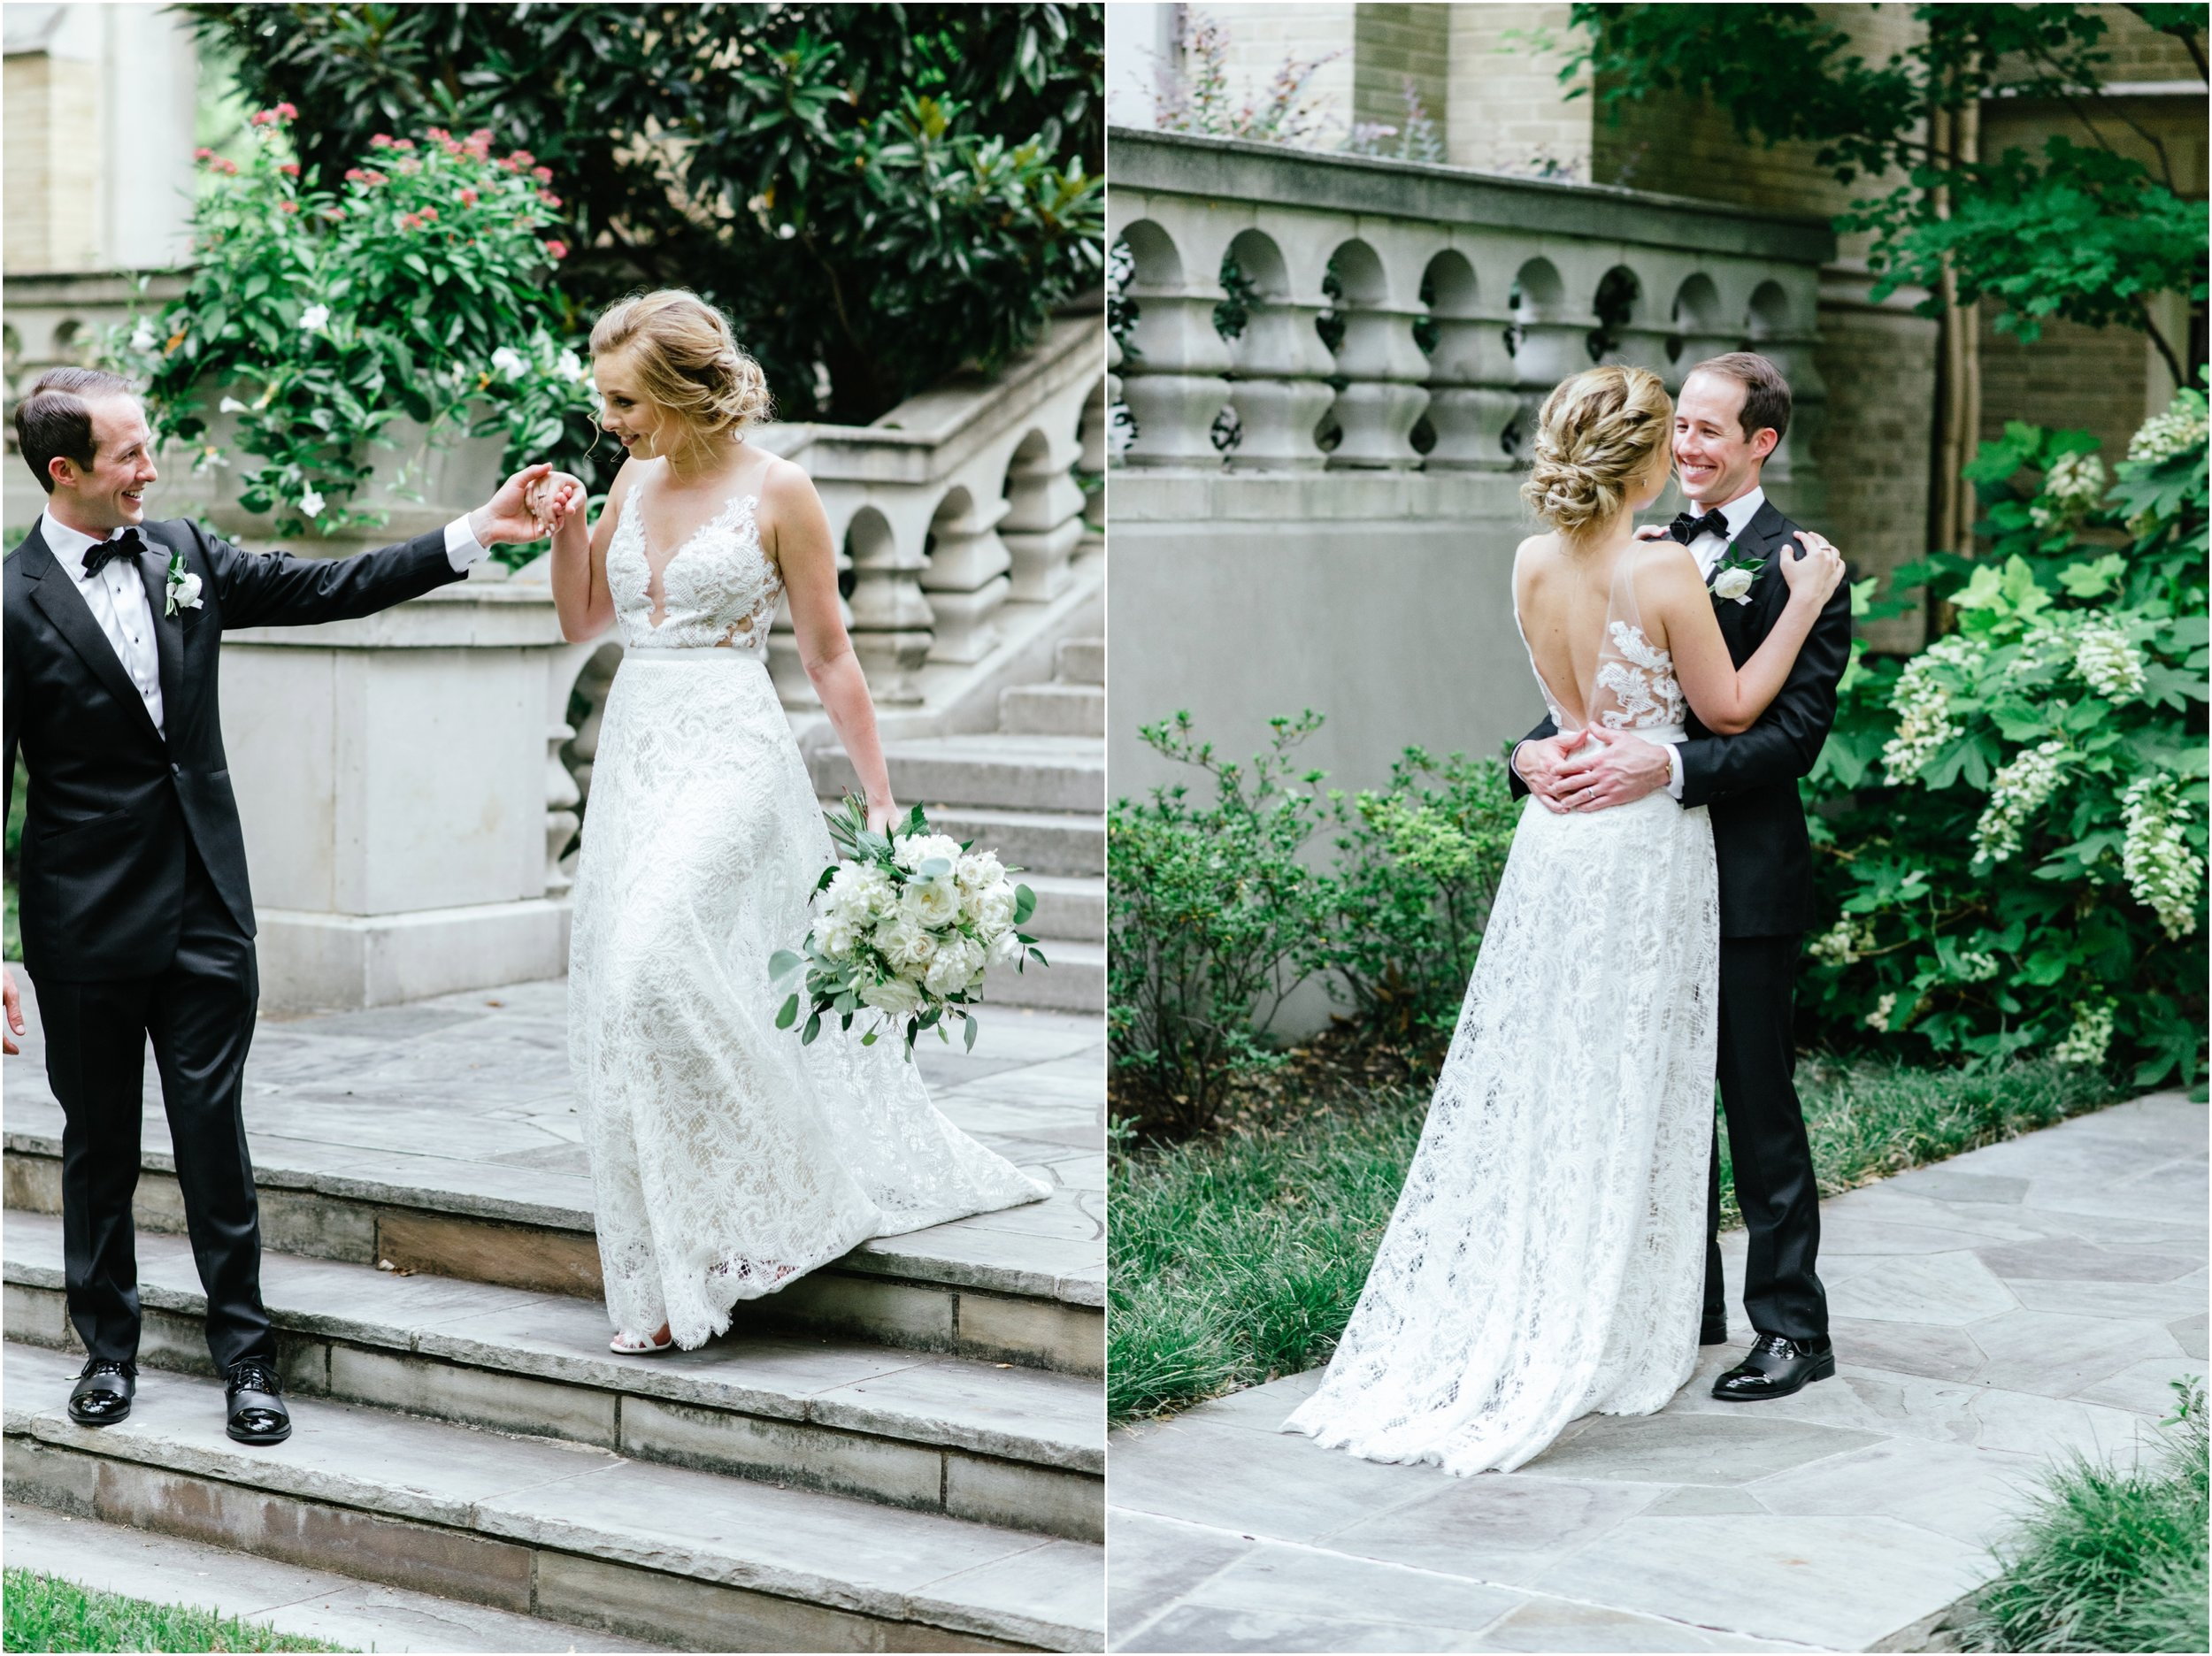 dallasweddingphotographer_fortworthweddingphotographer_texasweddingphotographer_mattandjulieweddings_Lauren+Andy_0072.jpg